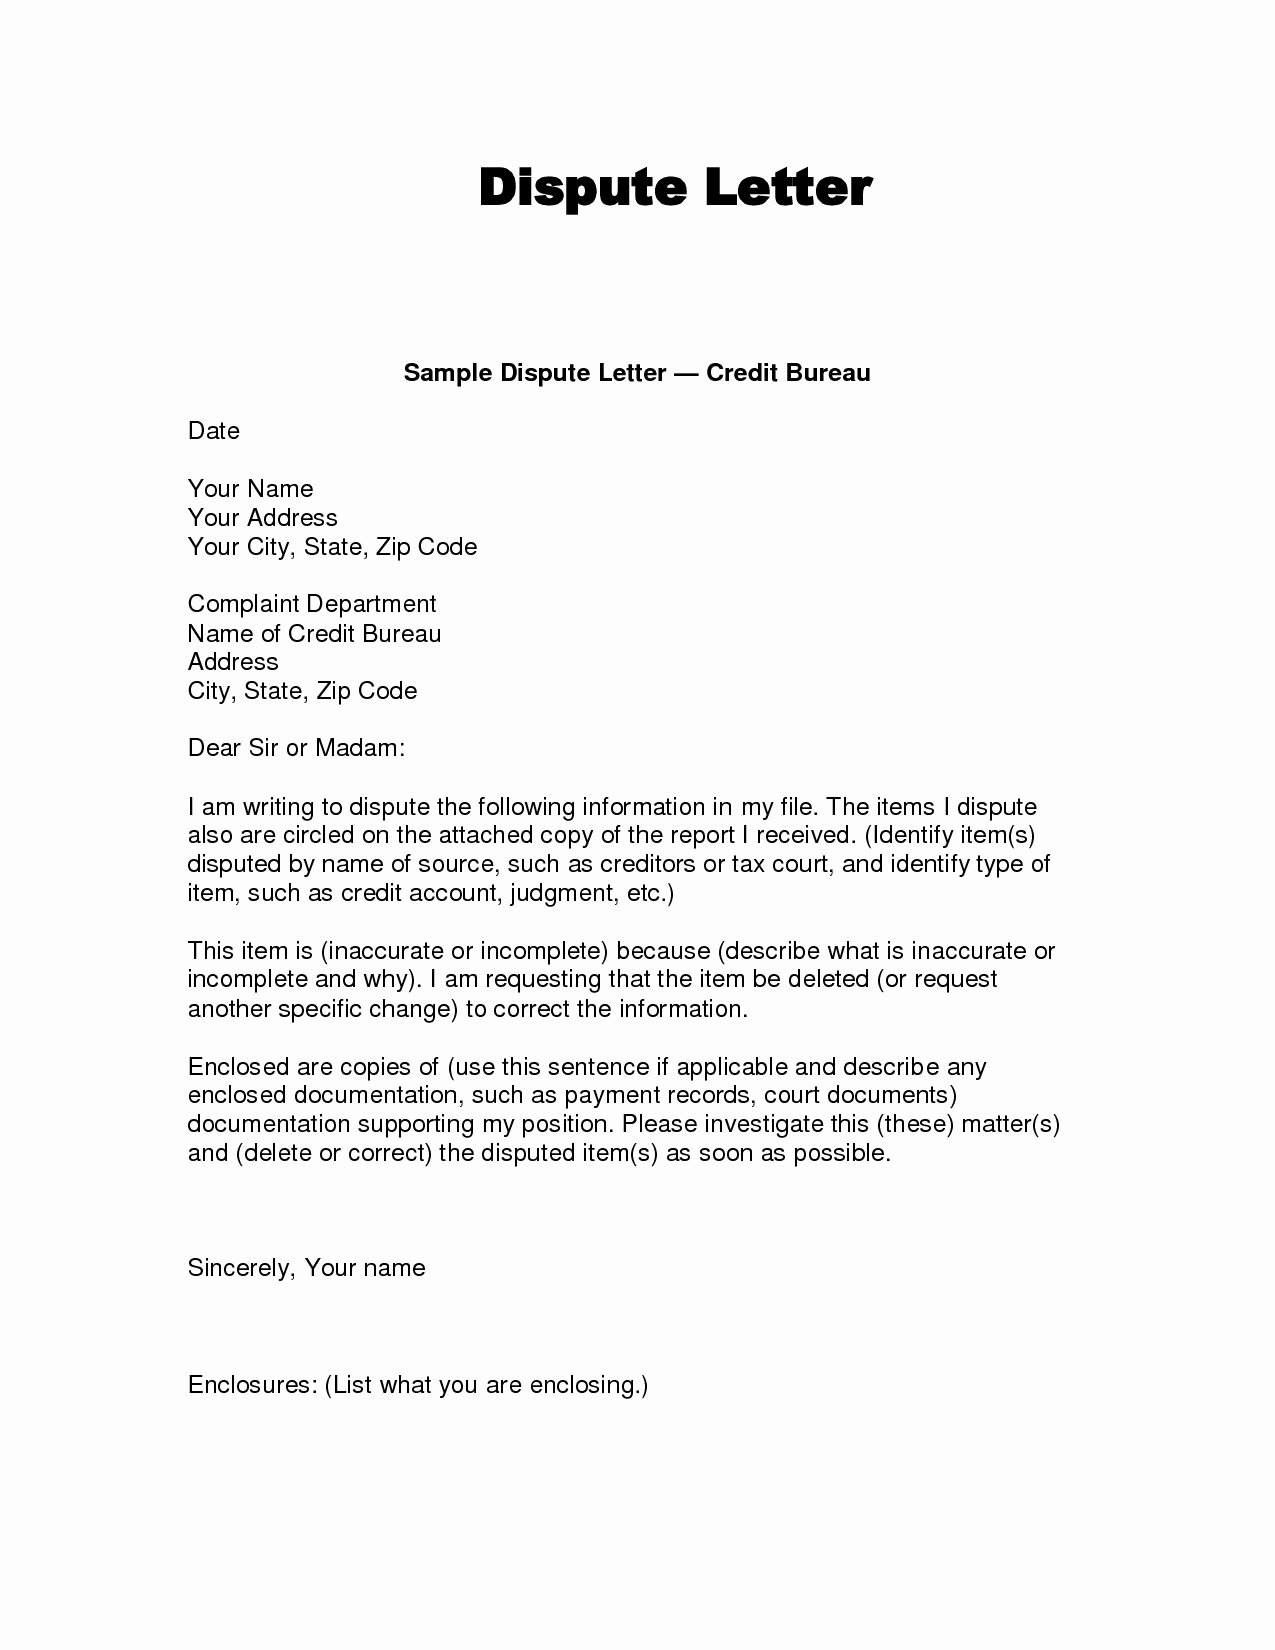 Sample Letter Of Explanation for Late Payments On Credit Report Unique Dispute Letter to Credit Bureau Template – Printable